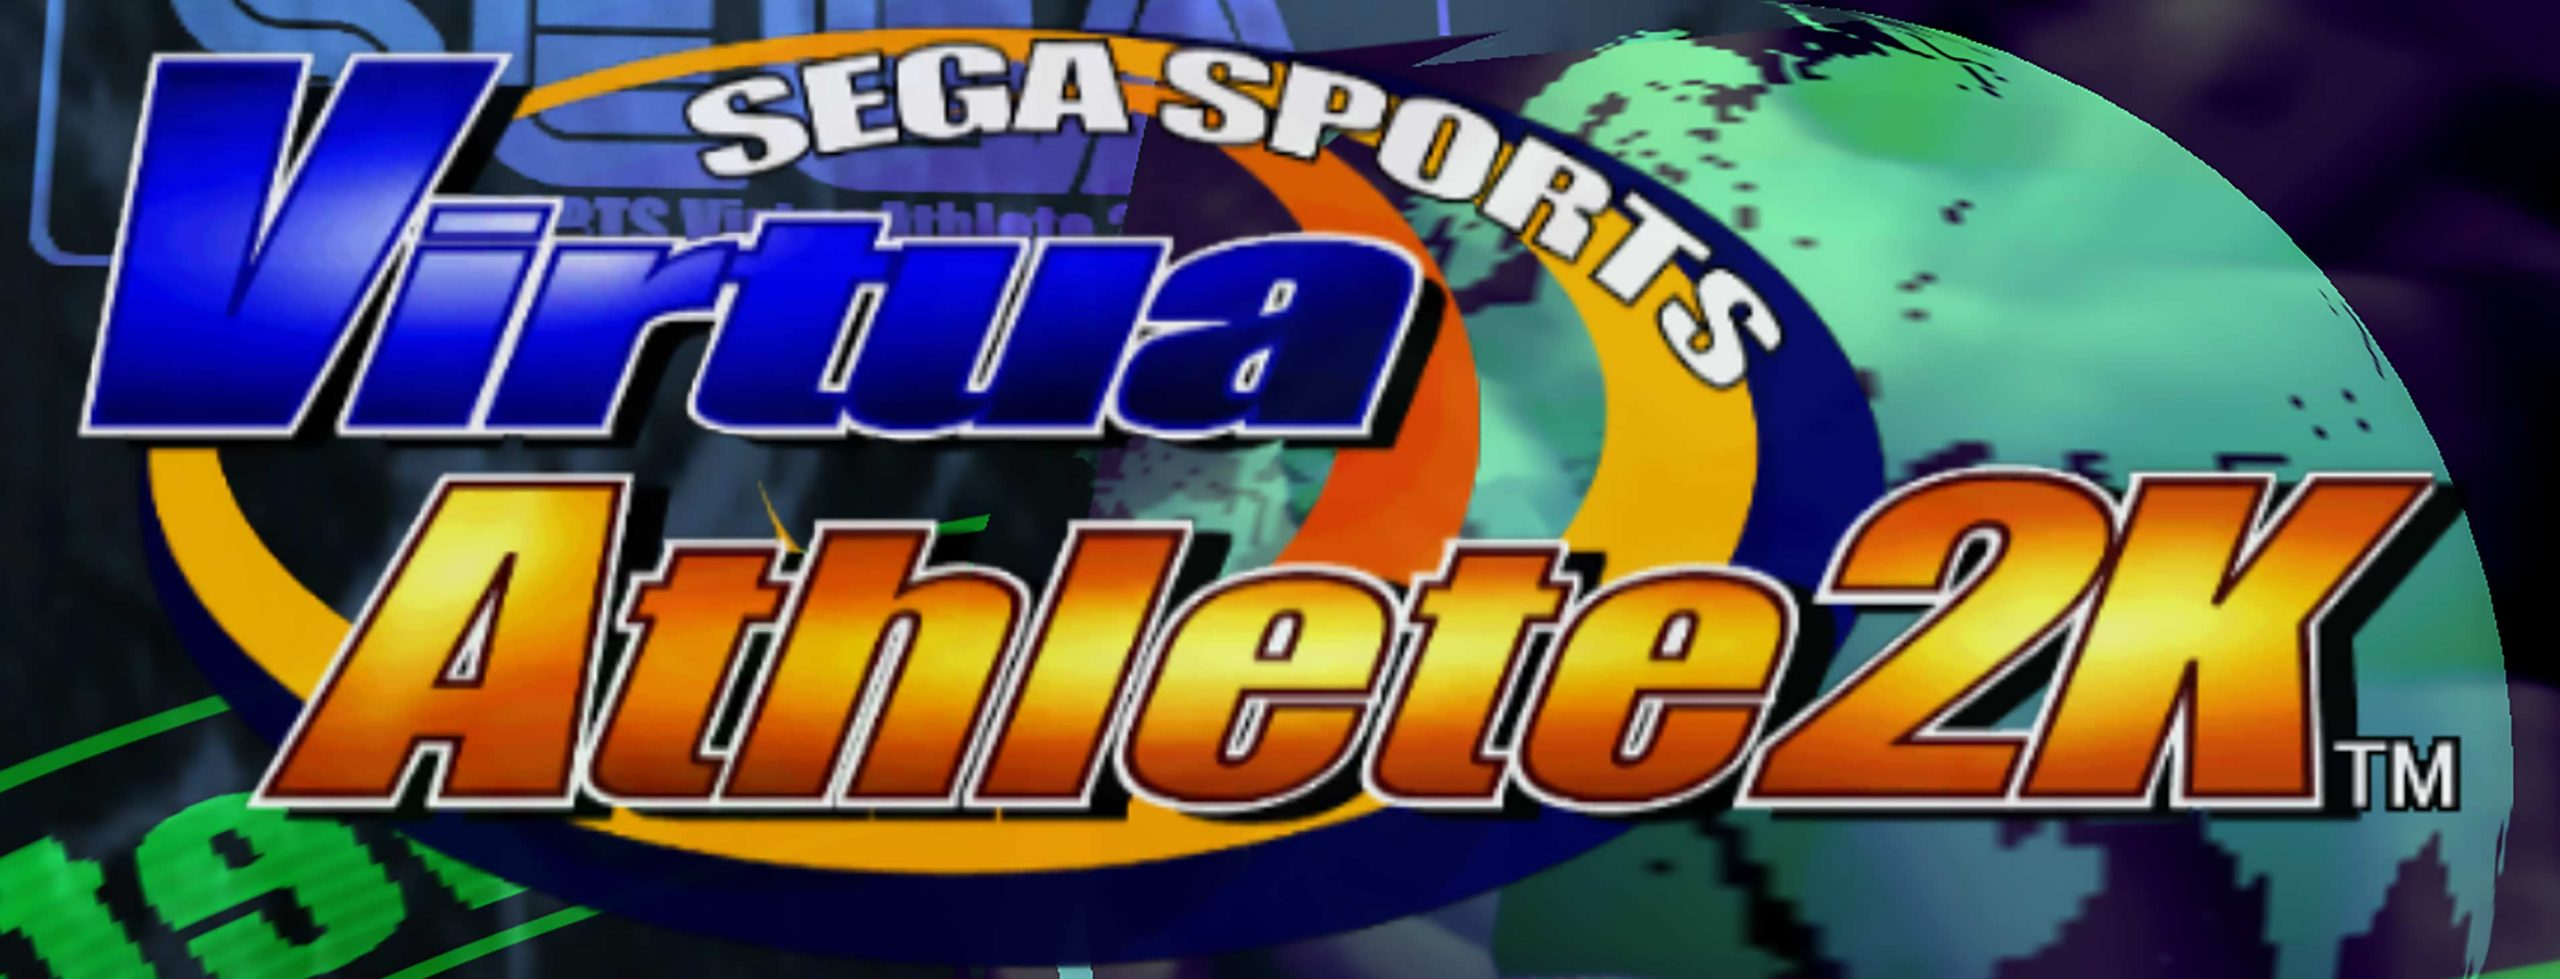 Virtua Athete 2K's title screen.